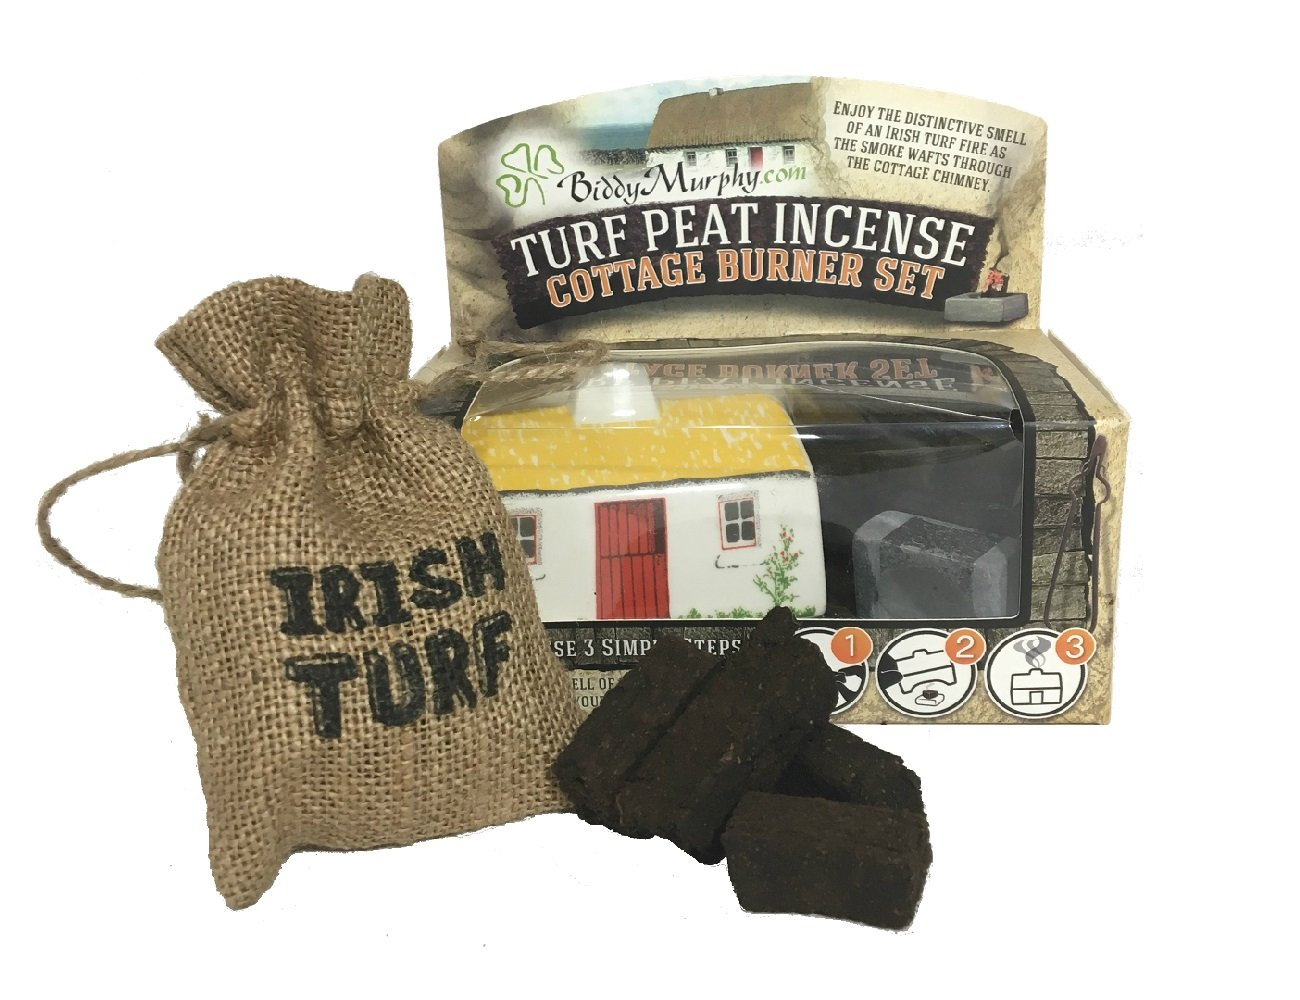 Biddy Murphy Irish Peat Turf Incense Burner Ceramic Cottage with Irish Turf Bag Made in Ireland